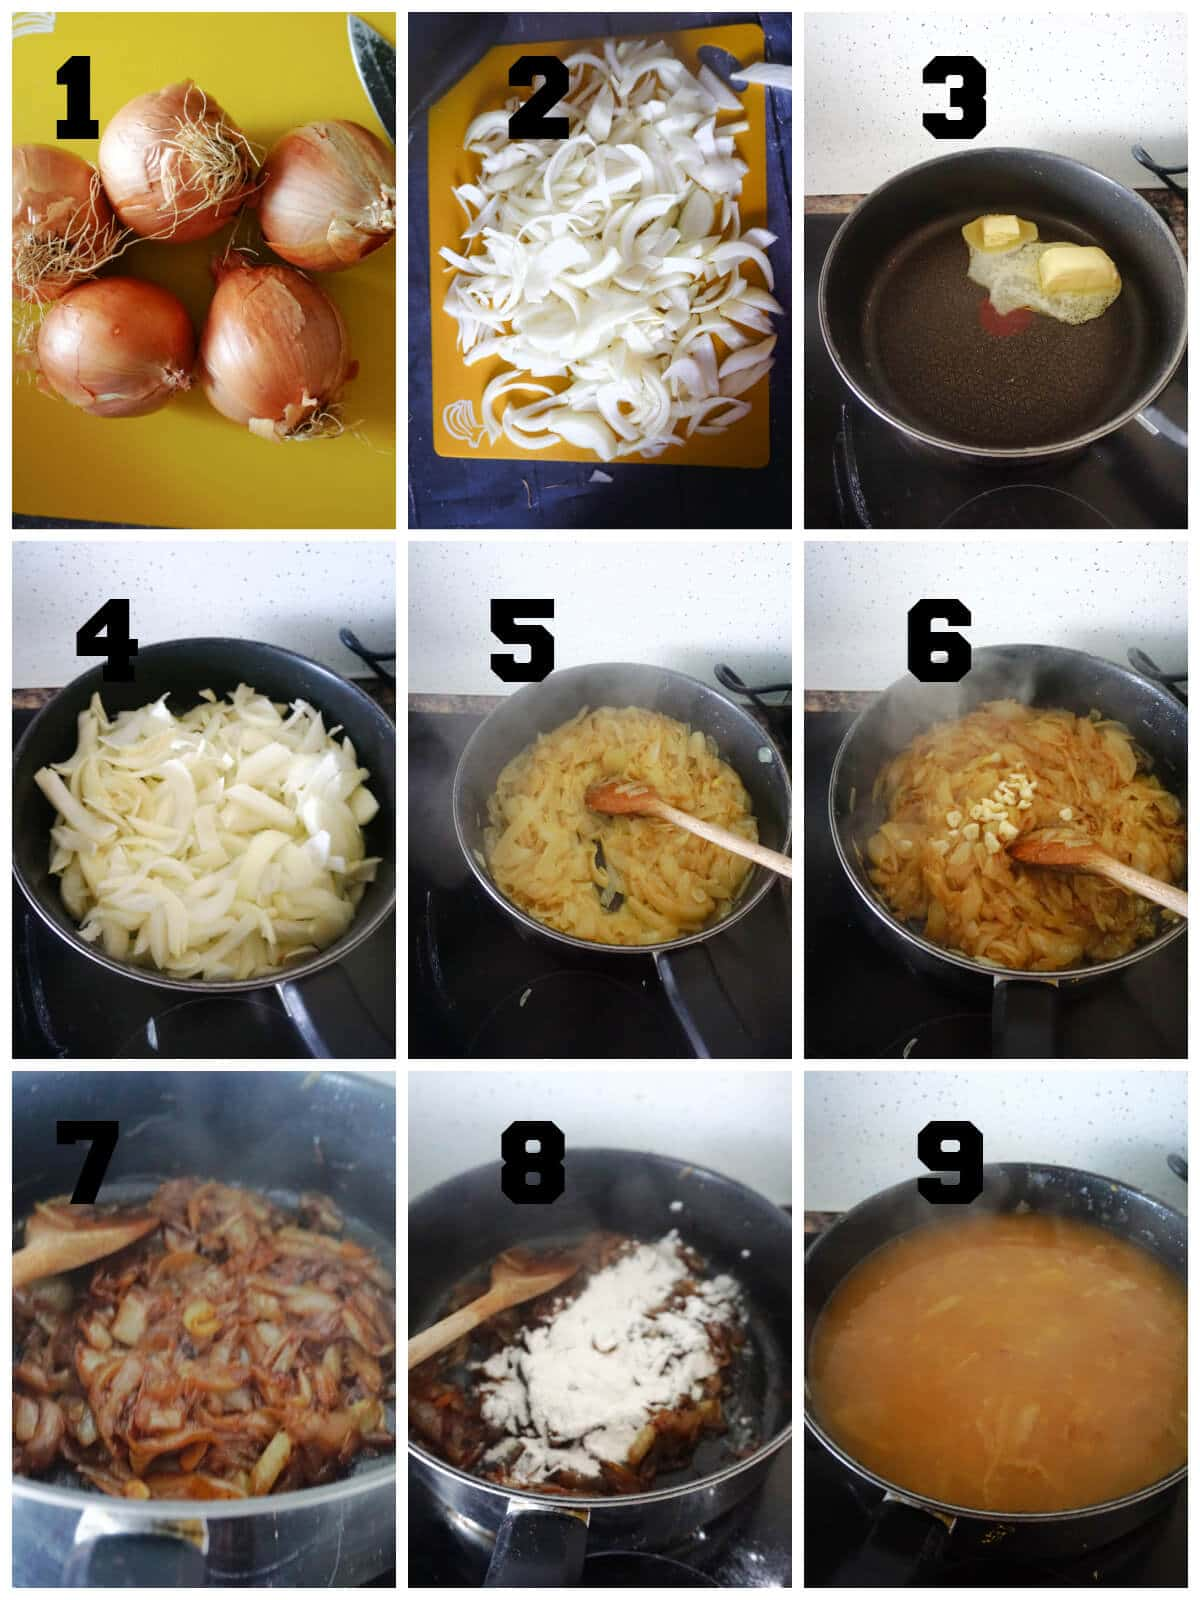 Collage of 9 photos to show how to make French Onion Soup